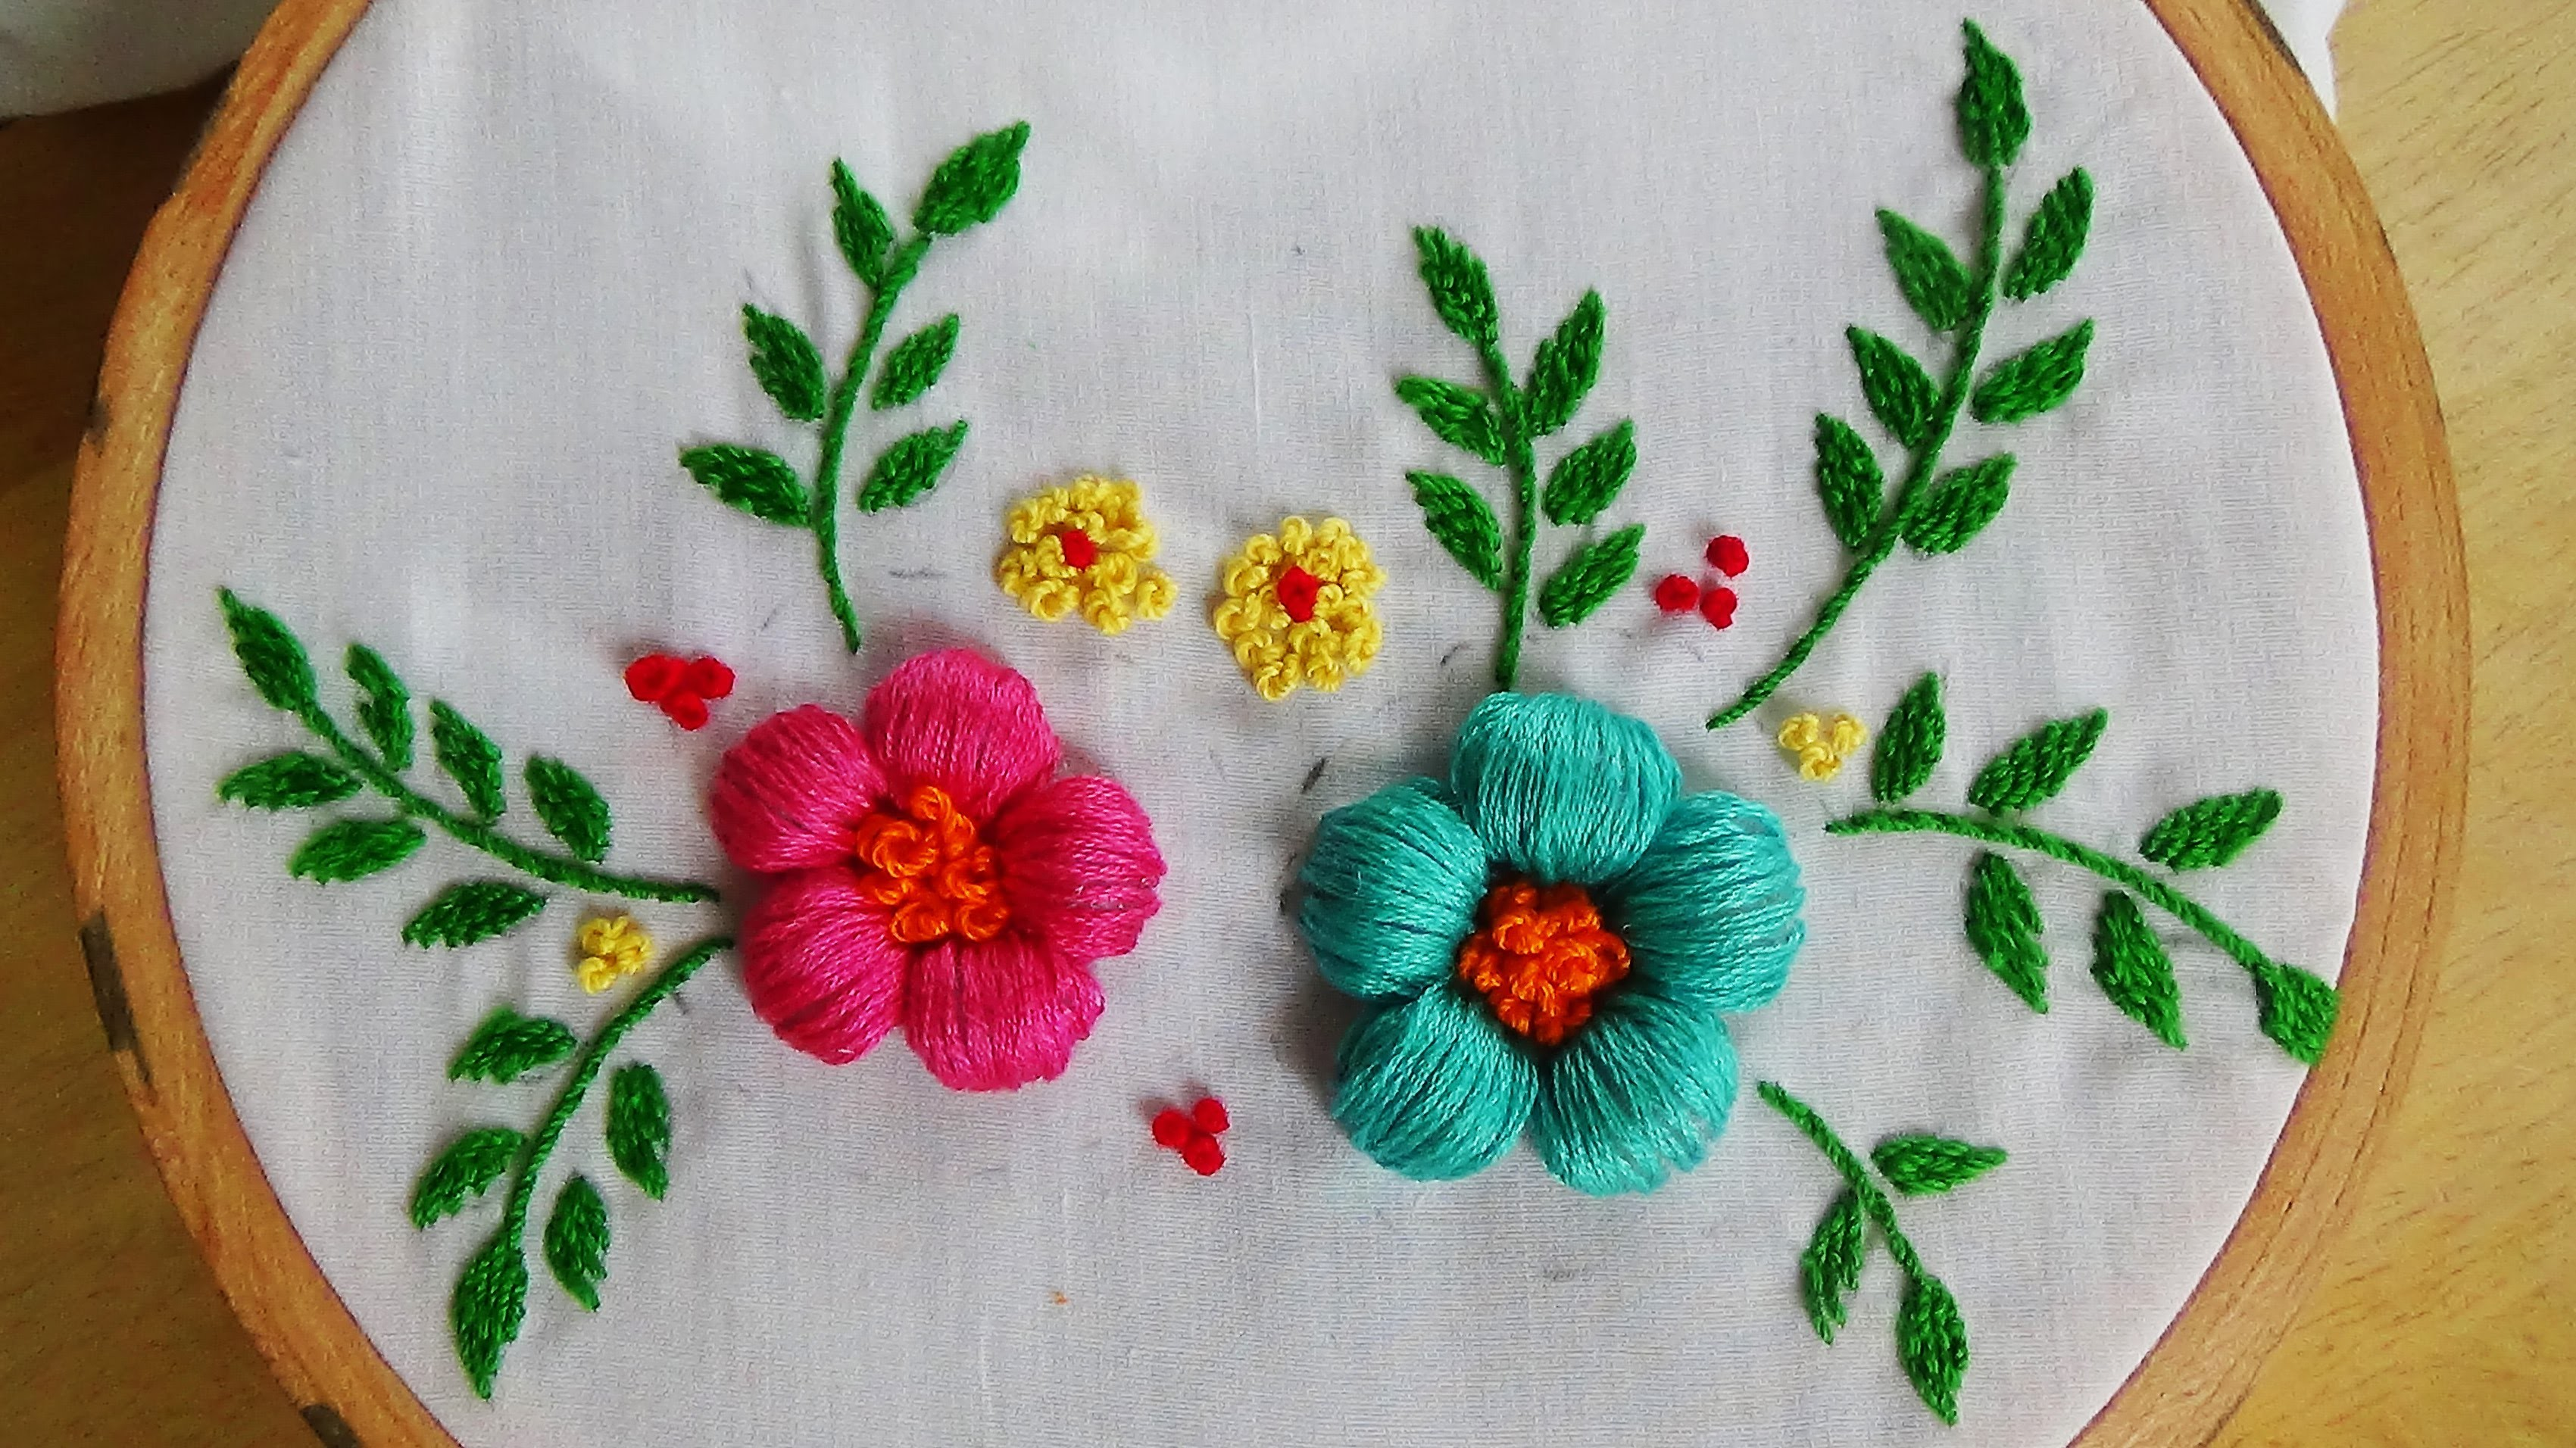 Hand embroidery puffed satin stitch